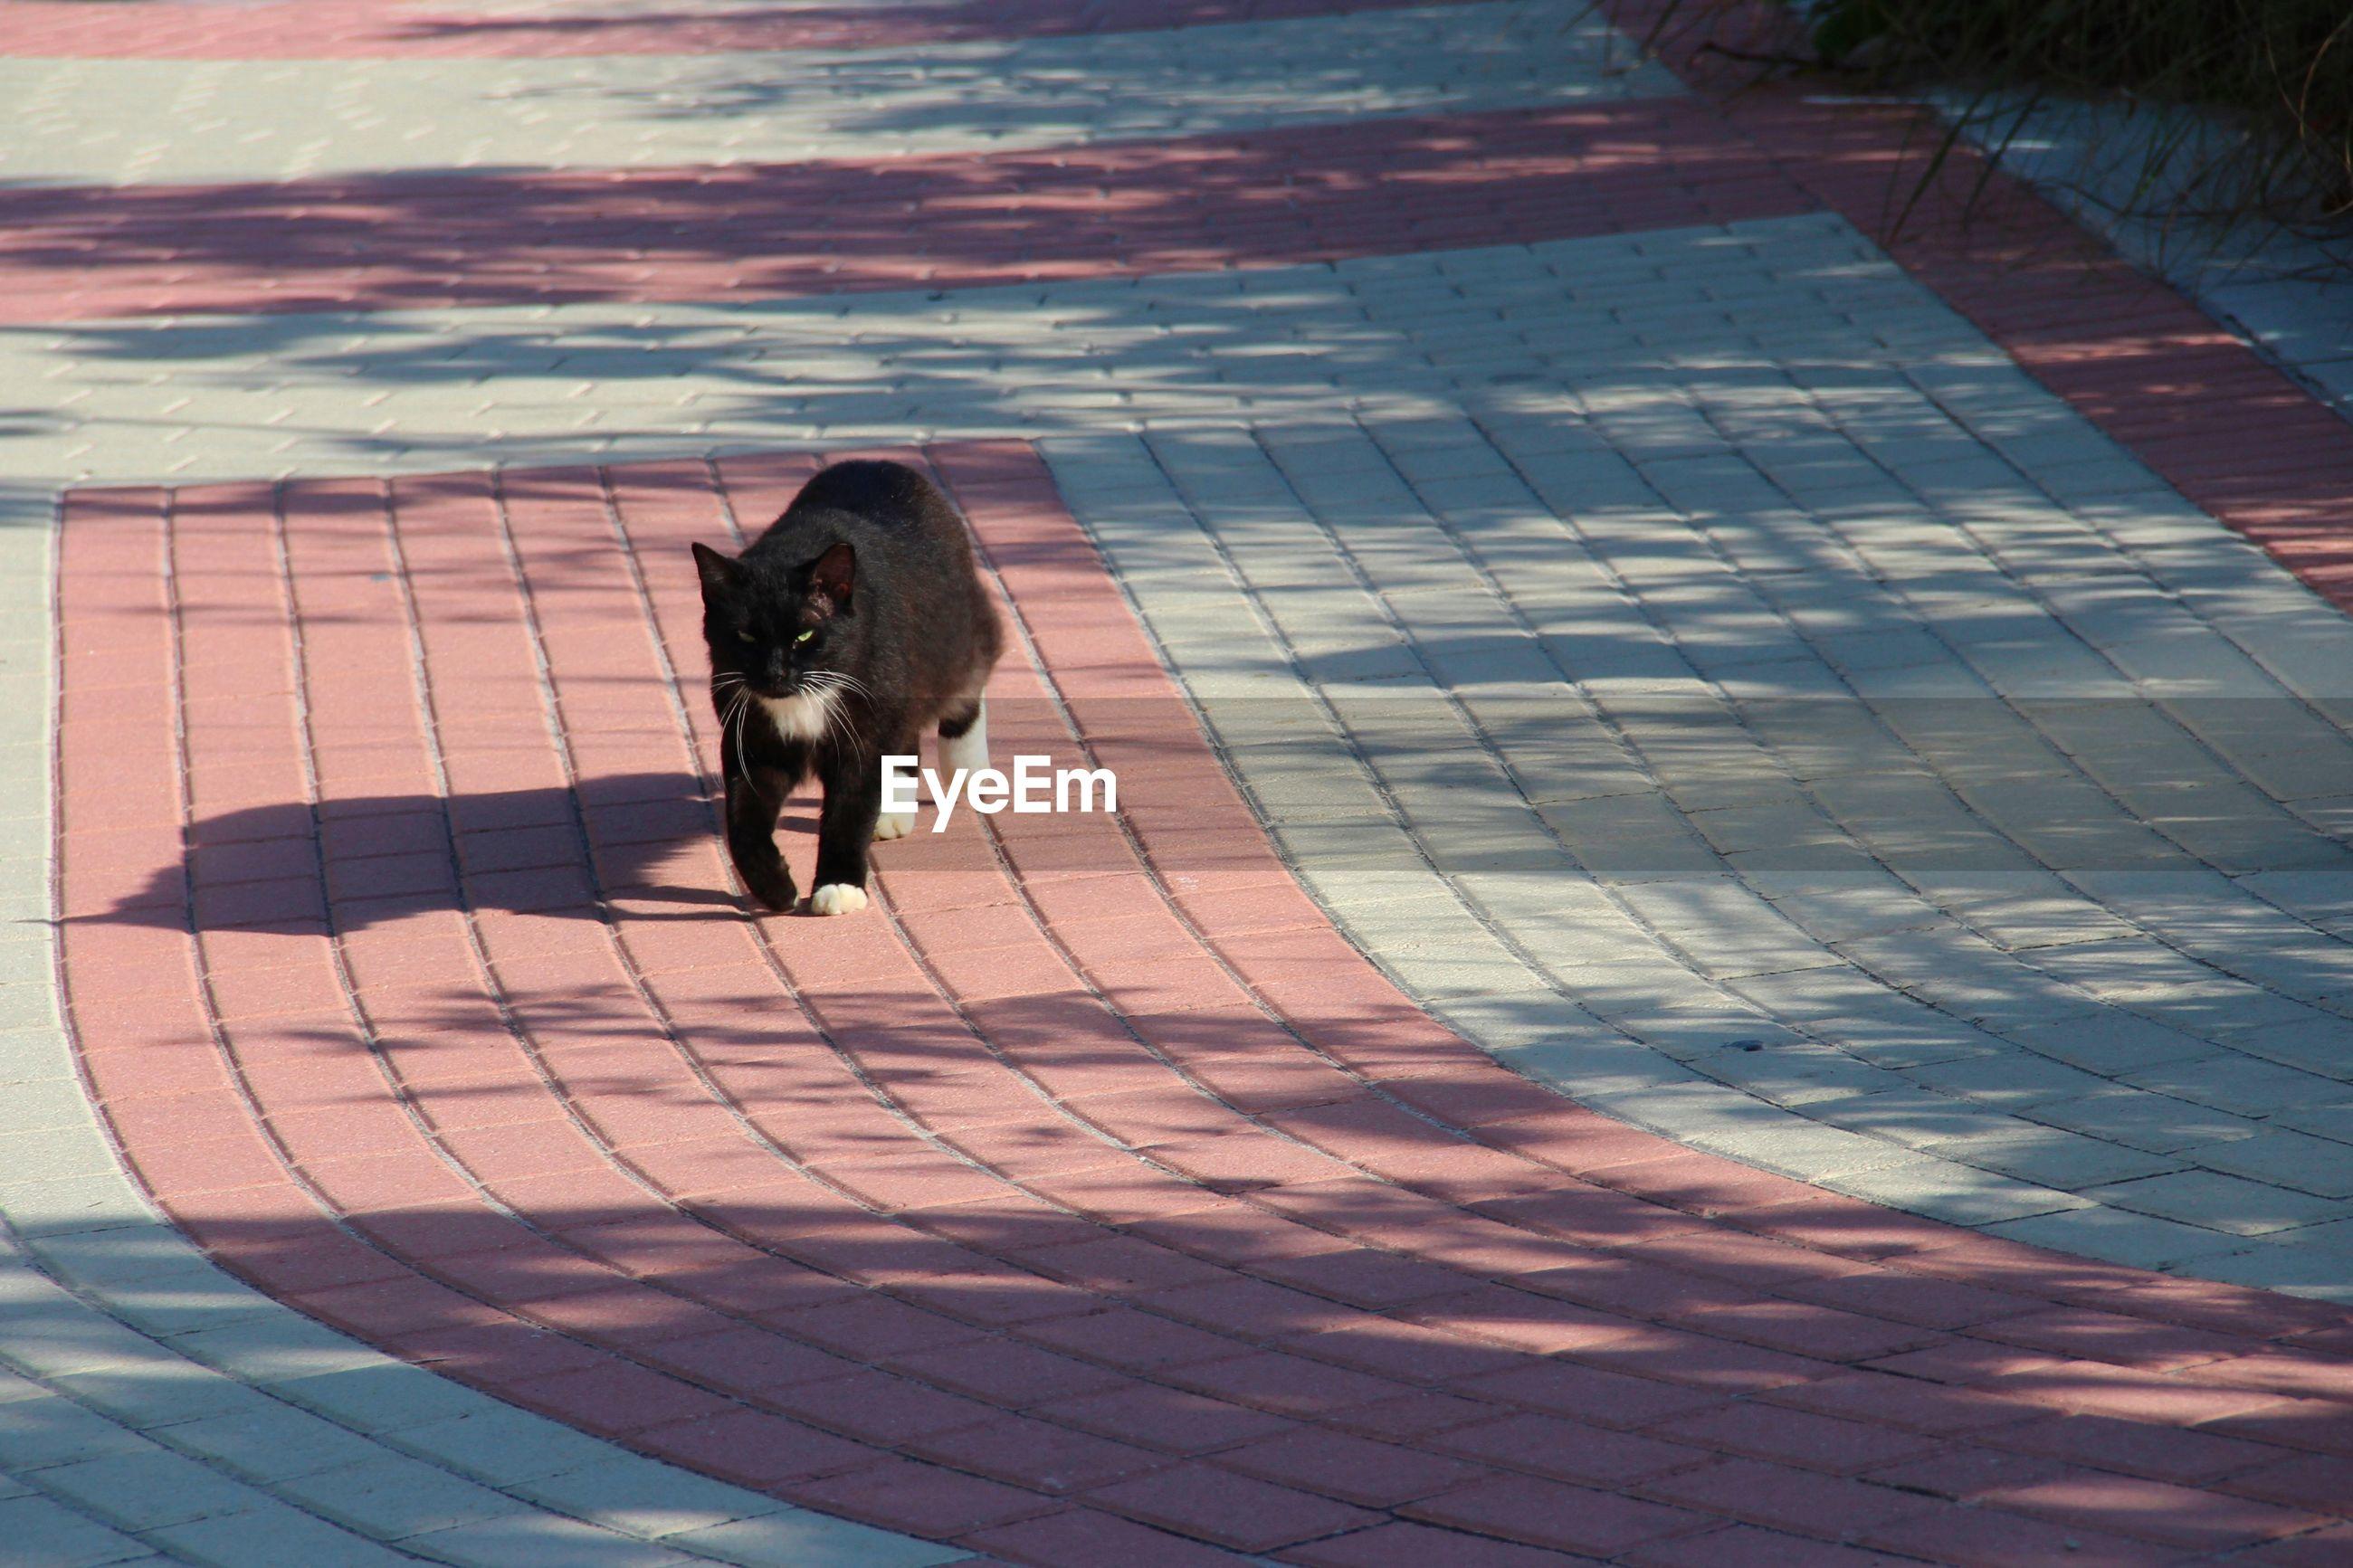 dog, one animal, blue, animal themes, animal, floor, flooring, pet, domestic animals, footpath, canine, mammal, road surface, high angle view, shadow, day, nature, sunlight, no people, paving stone, cat, outdoors, reflection, outdoor structure, full length, water, street, walking, stone, cobblestone